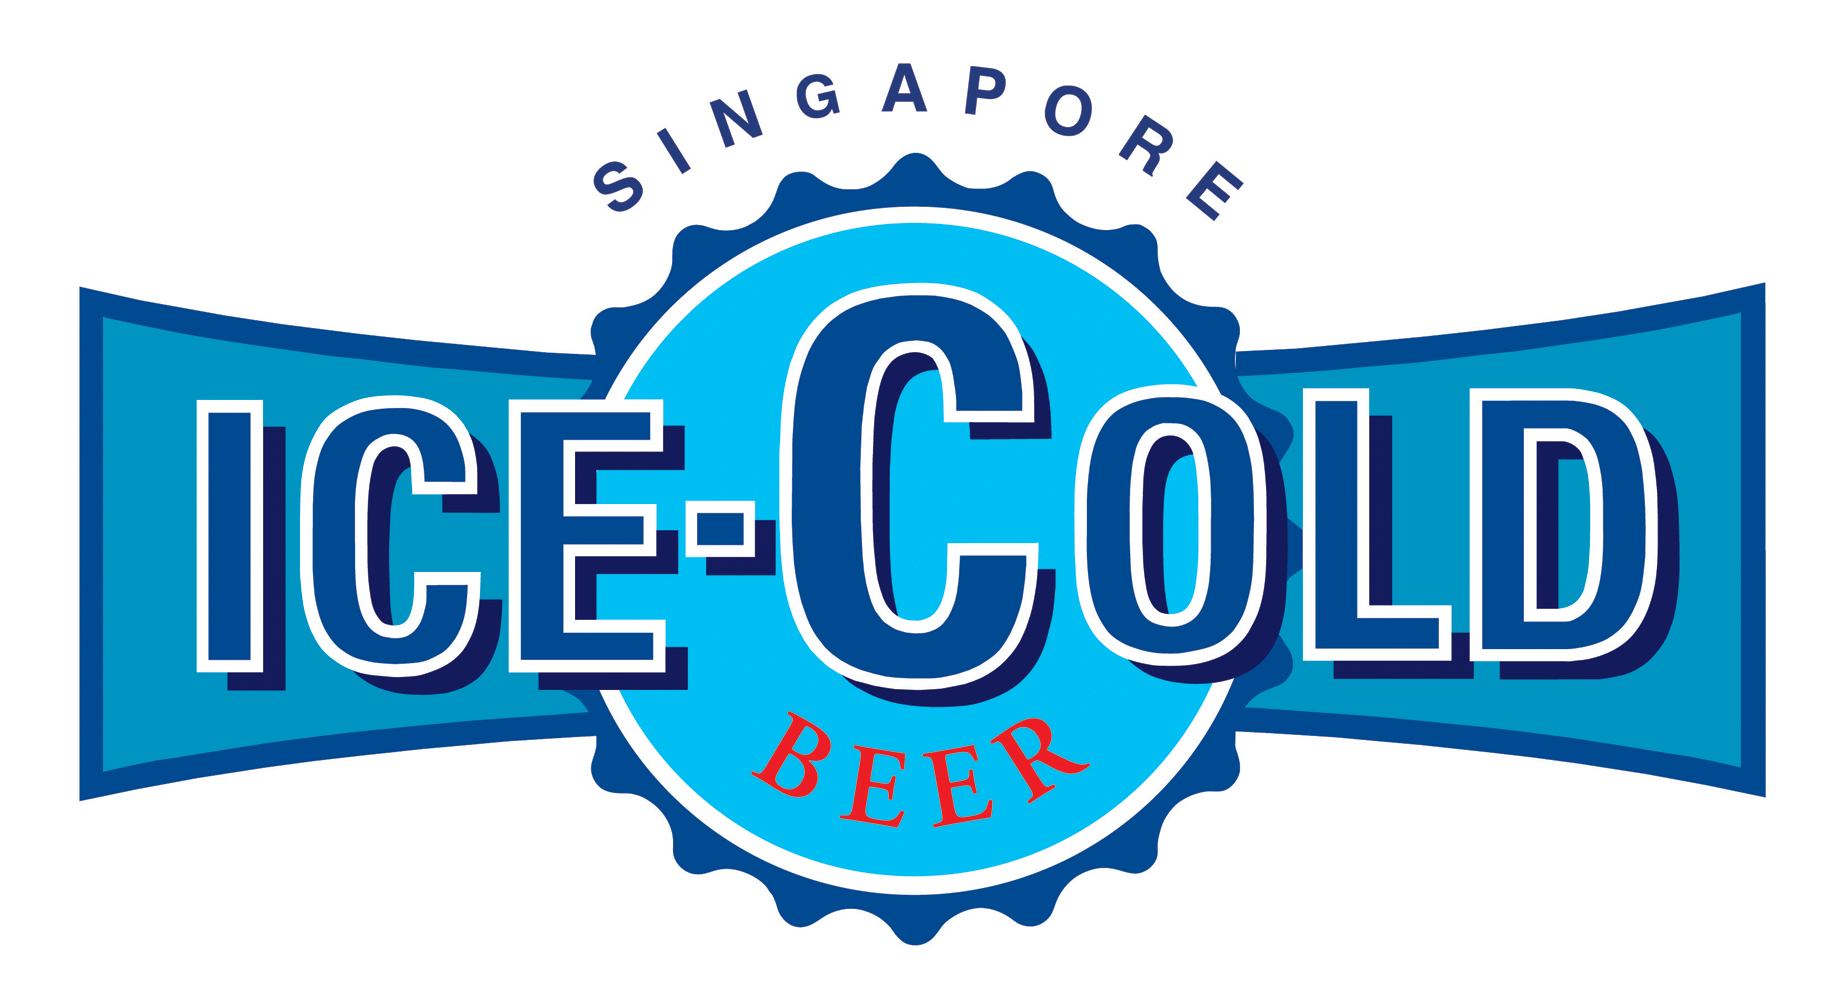 Ice-Cold Beer Pte Ltd